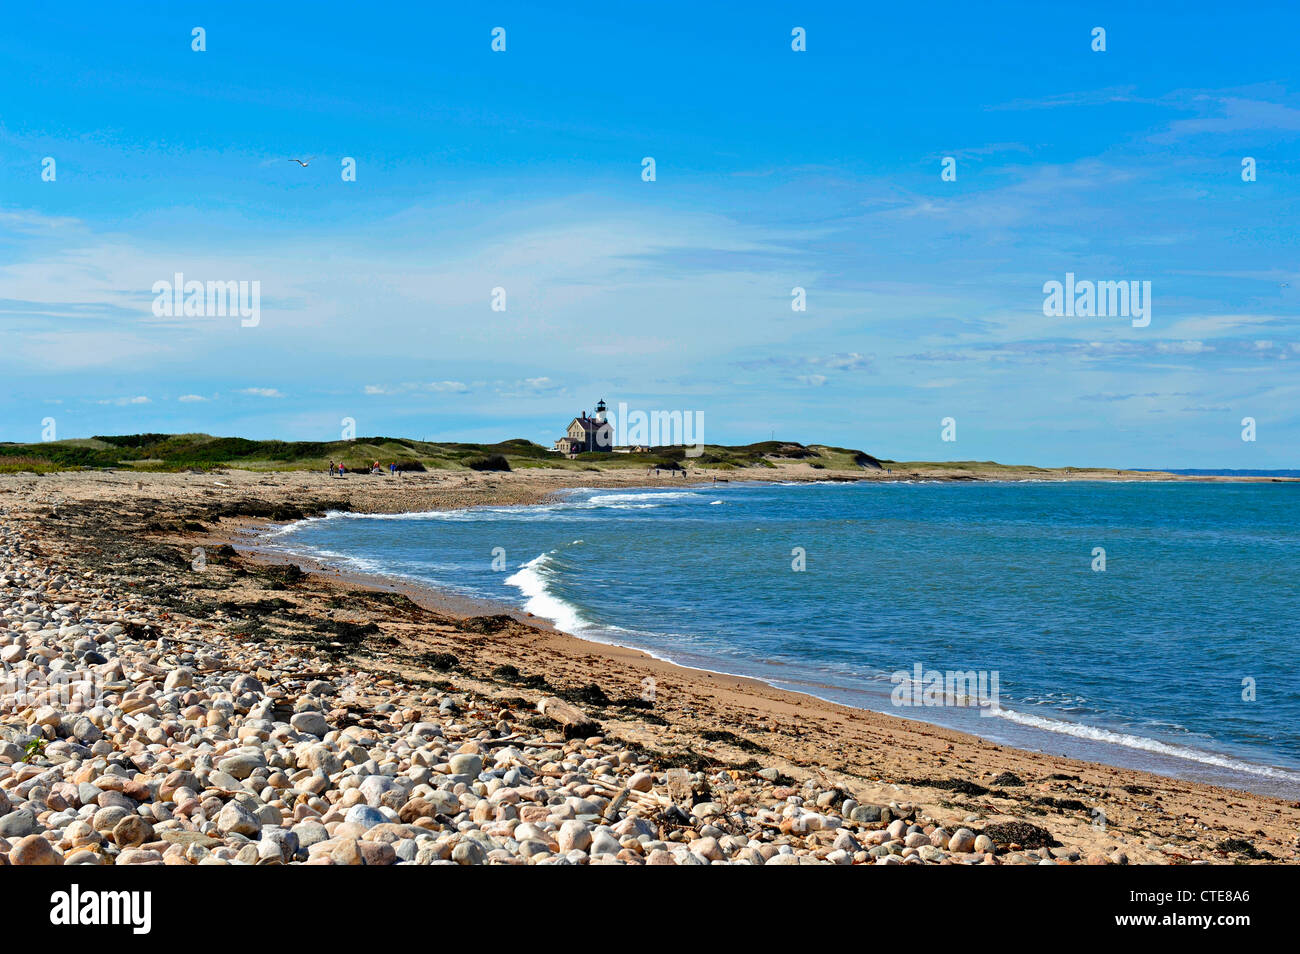 View of North Light Lighthouse and rocky beach, Sandy Point, north end of Block Island, RI - Stock Image